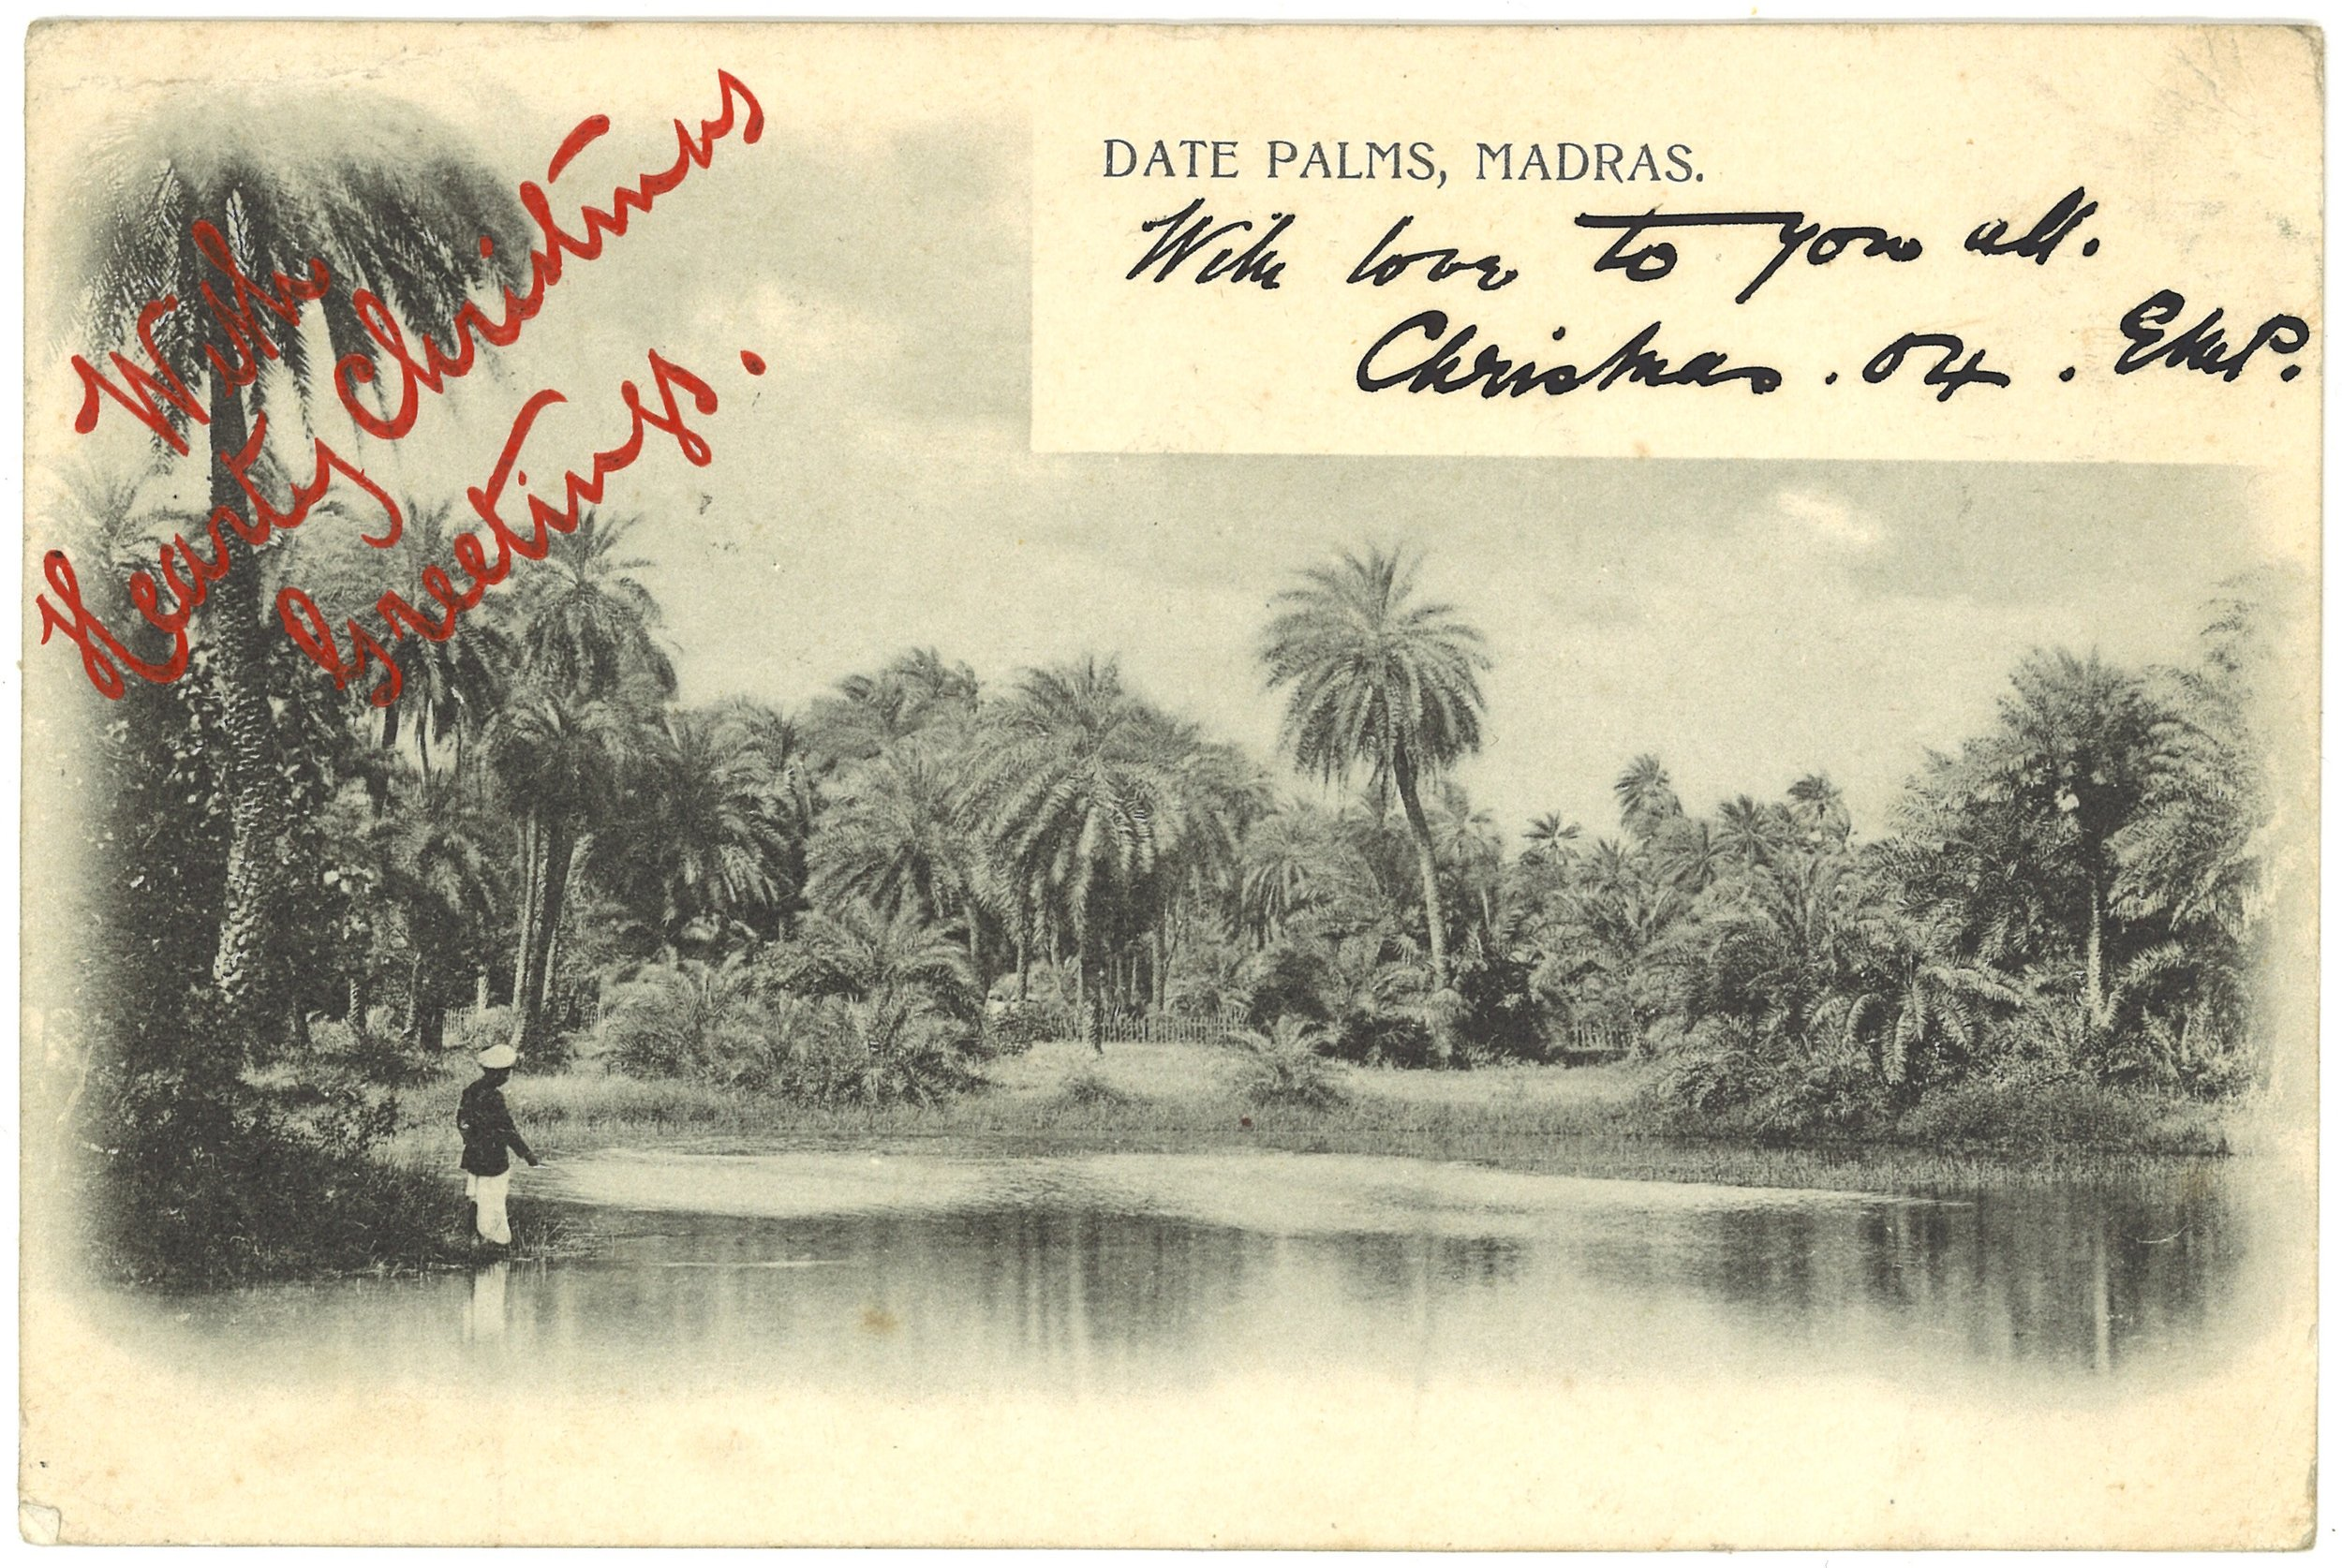 """Date Palms, Madras"". Publisher unknown. Posted on: 30.11.1904."